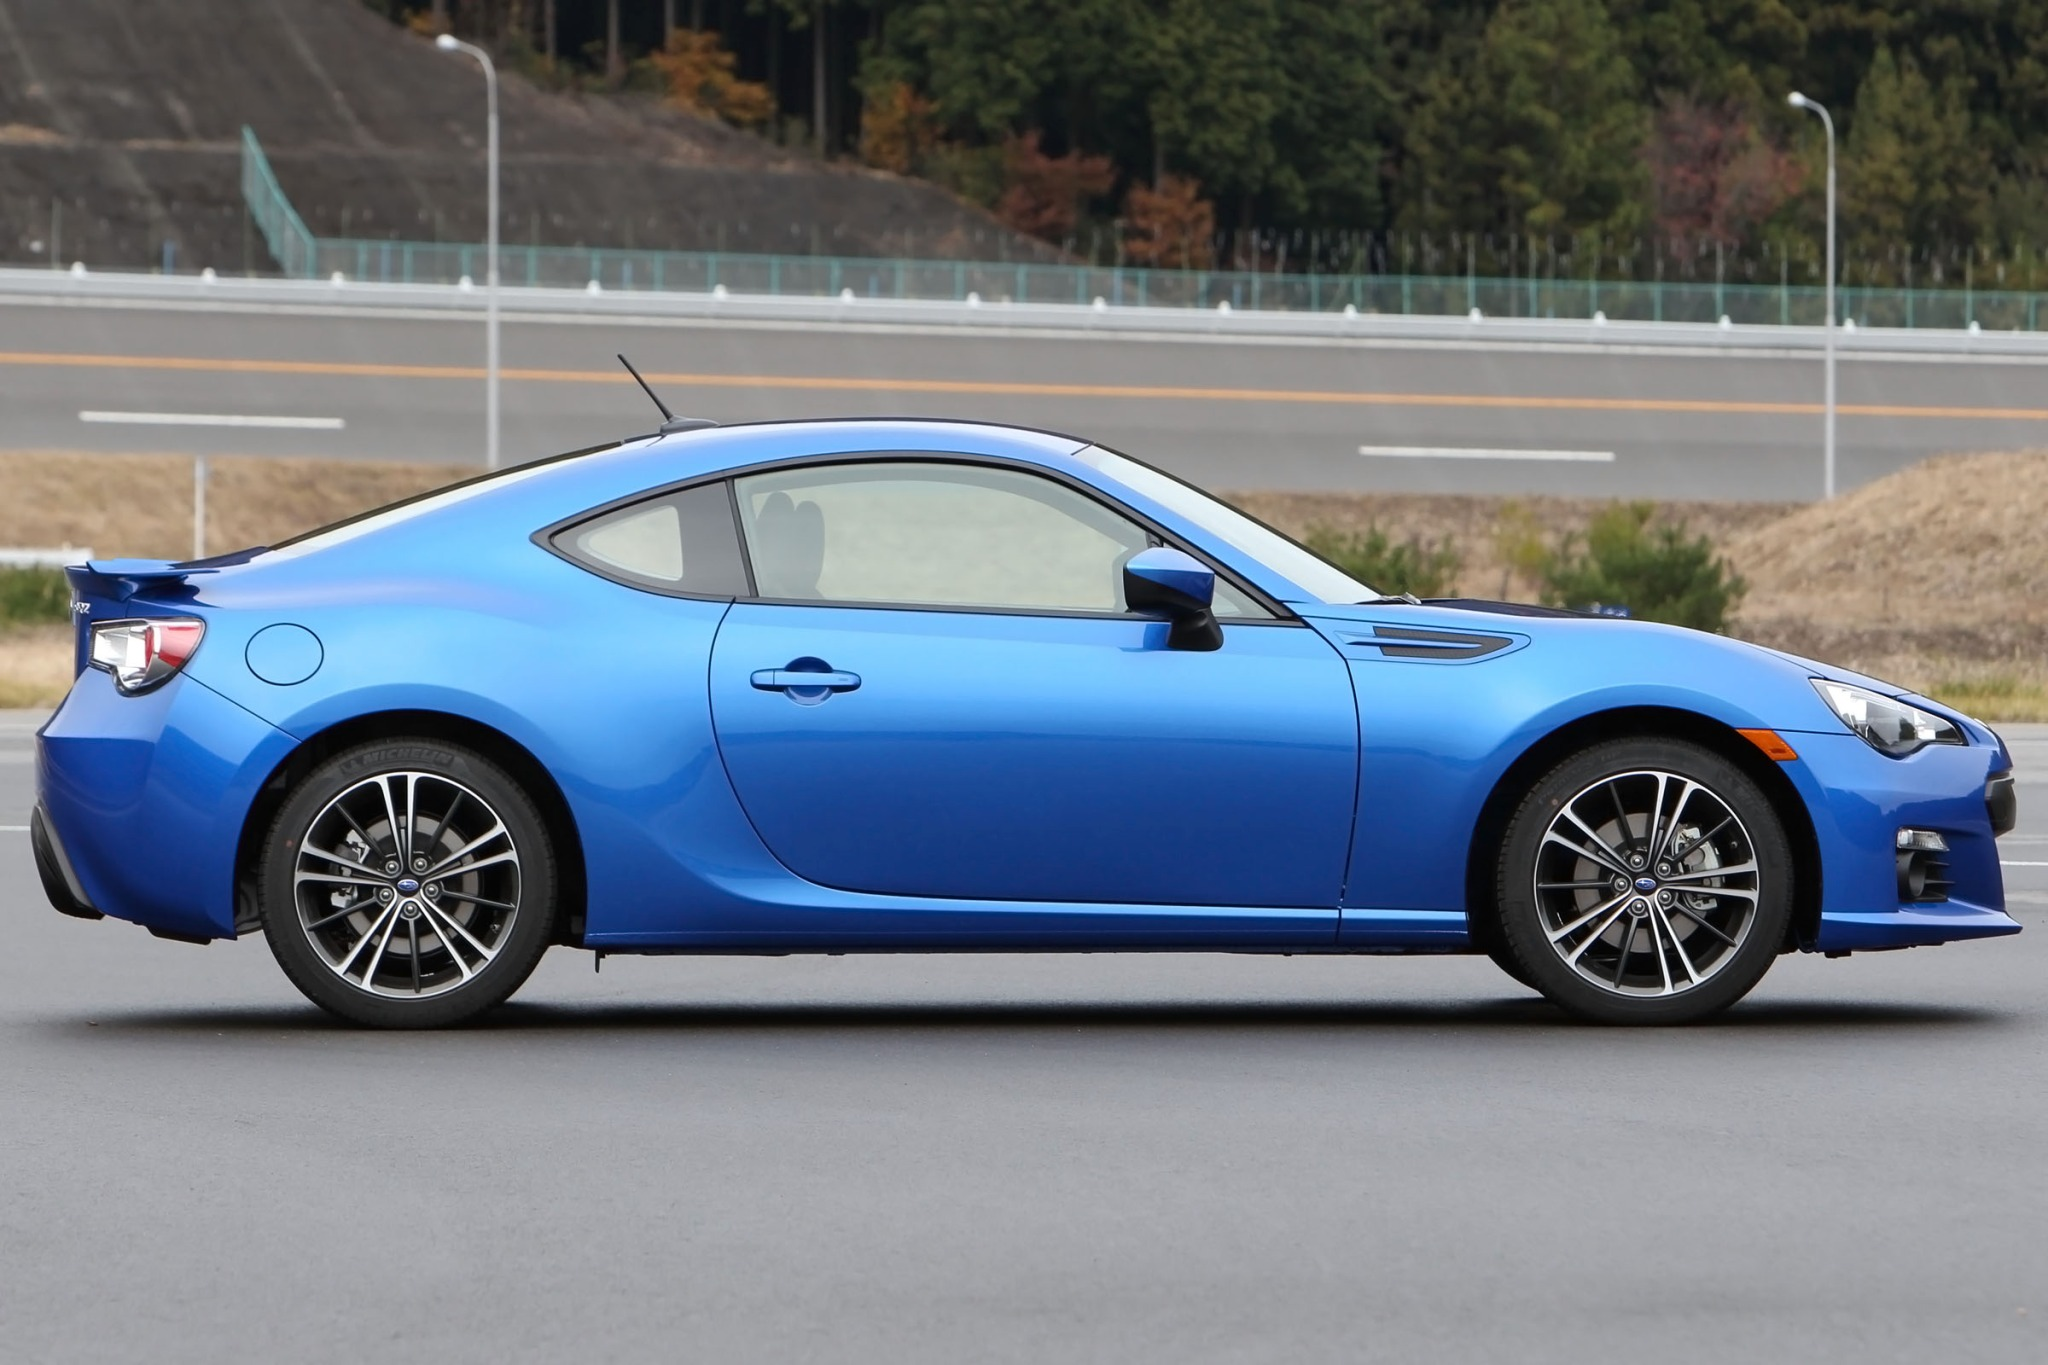 2013 Subaru BRZ Coupe Car interior #5